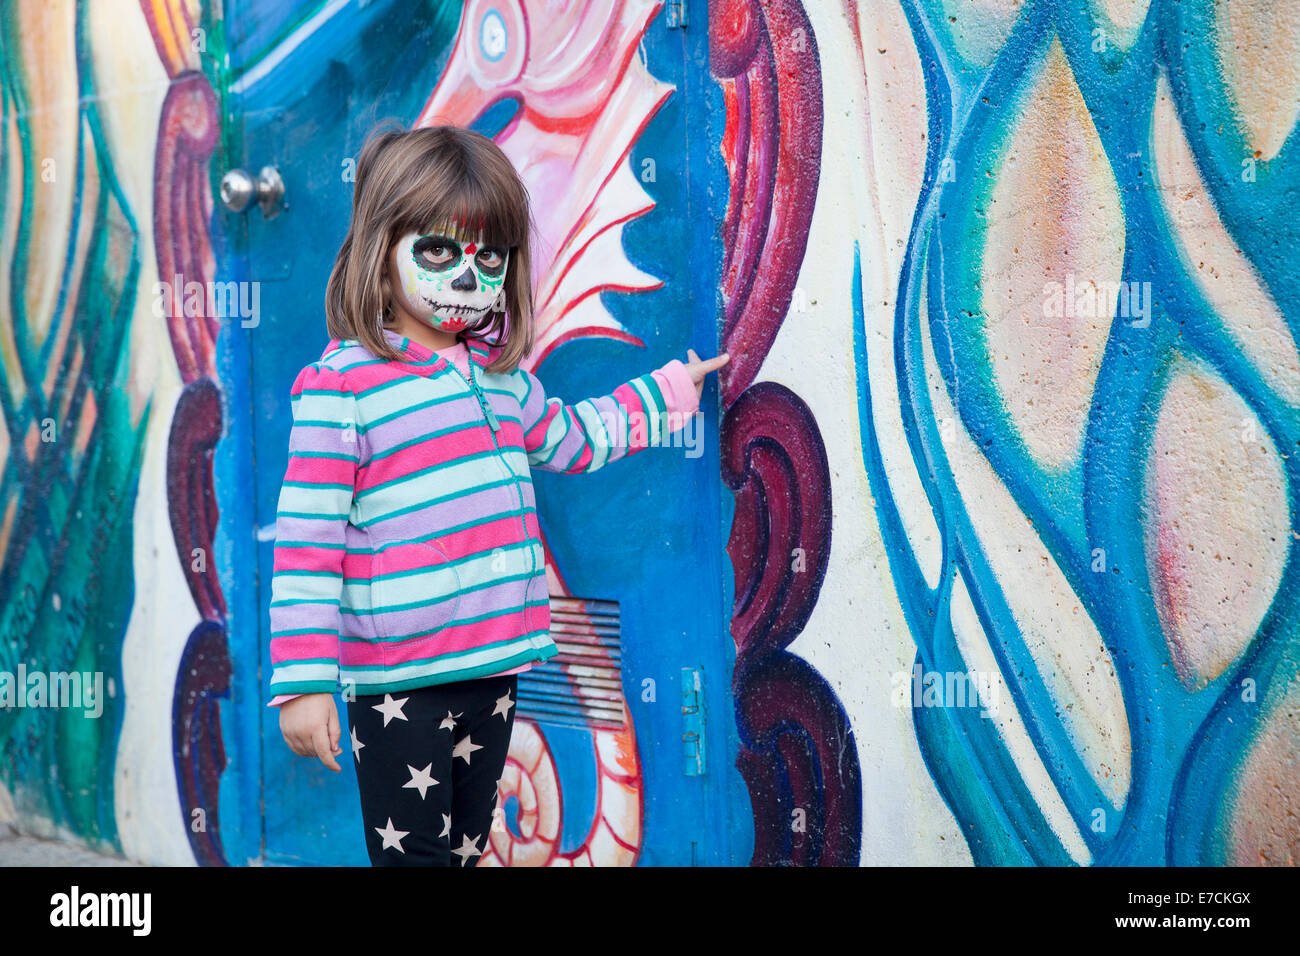 Little girl with face painted for Dia de los Muertos in front of mural, Garfield Park, Mission District, San Francisco, - Stock Image